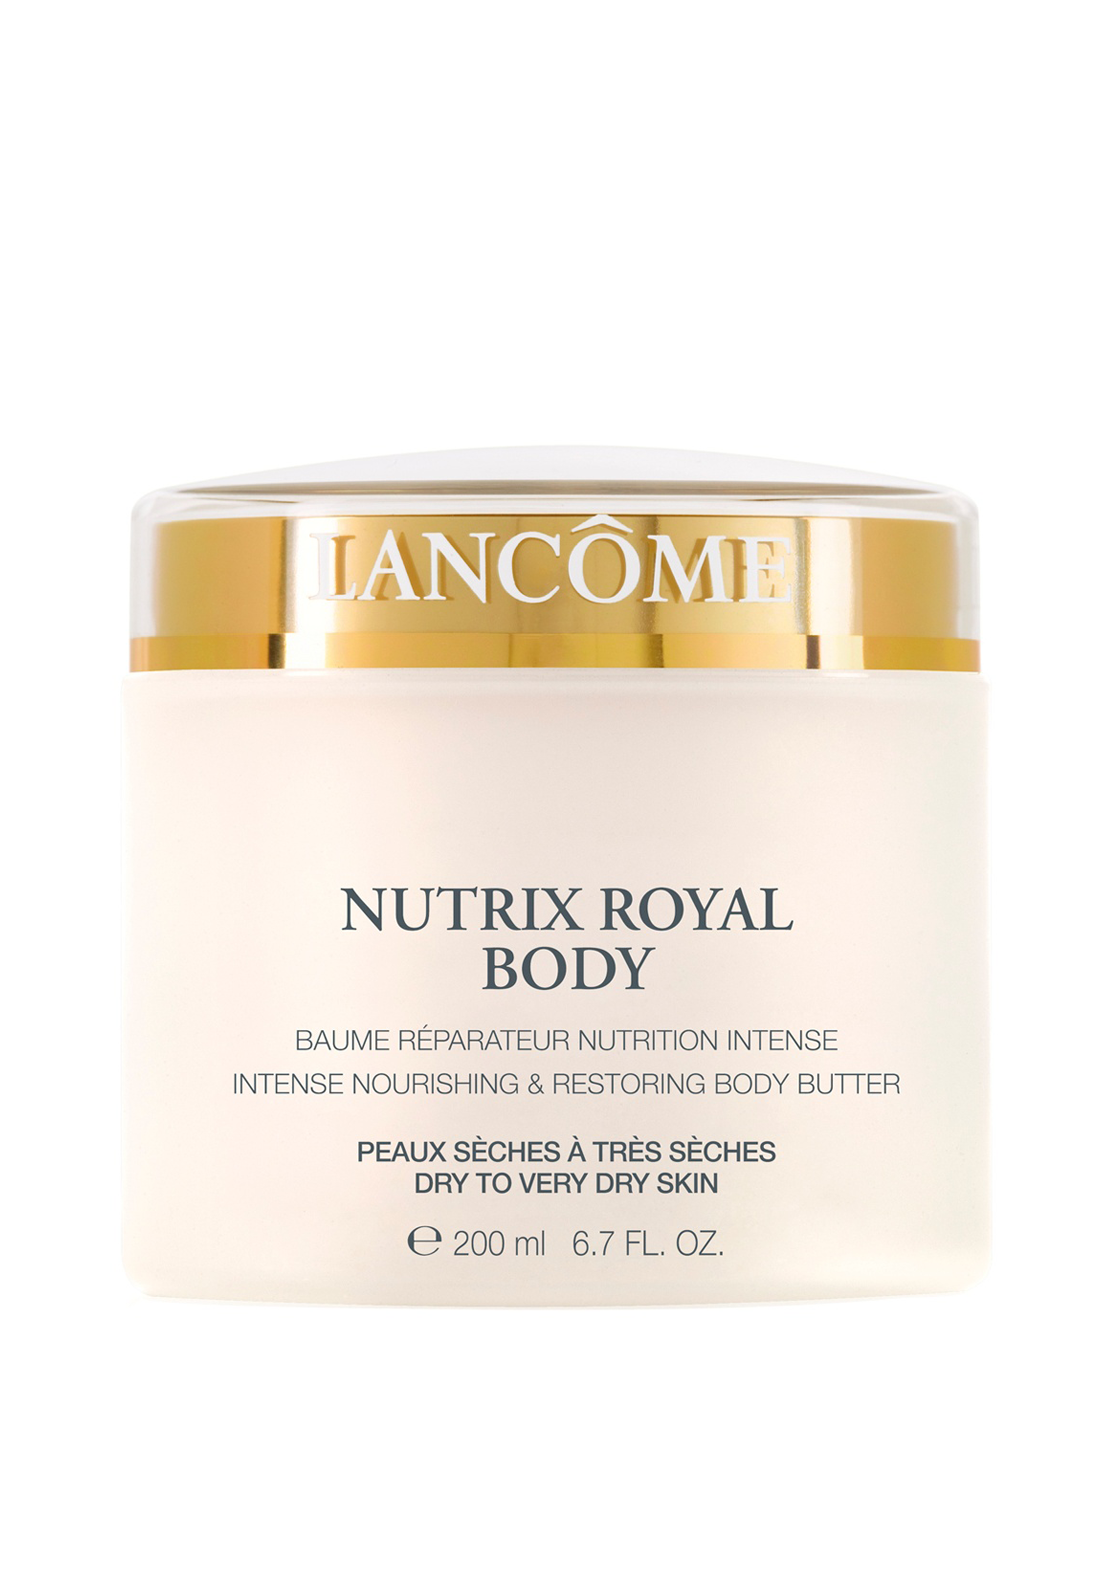 Lancome Nutrix Royal Body Intense Nourishing & Restoring Body Butter, 200ml